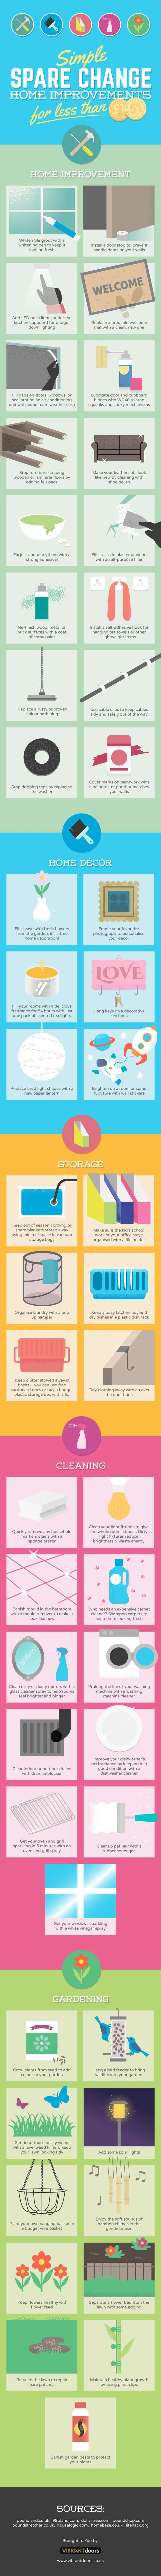 These ideas are GREAT! Home improvement ideas that cost $1! That means that you can get more energy efficiency (saving long term money), better organization, cleanliness and improve the look of your home for a very frugal price tag! If you did one of these a day for 50 days - your home would have dramatic improvement and it only cost $50 and a few minutes of your time each day! I am implementing this starting today!